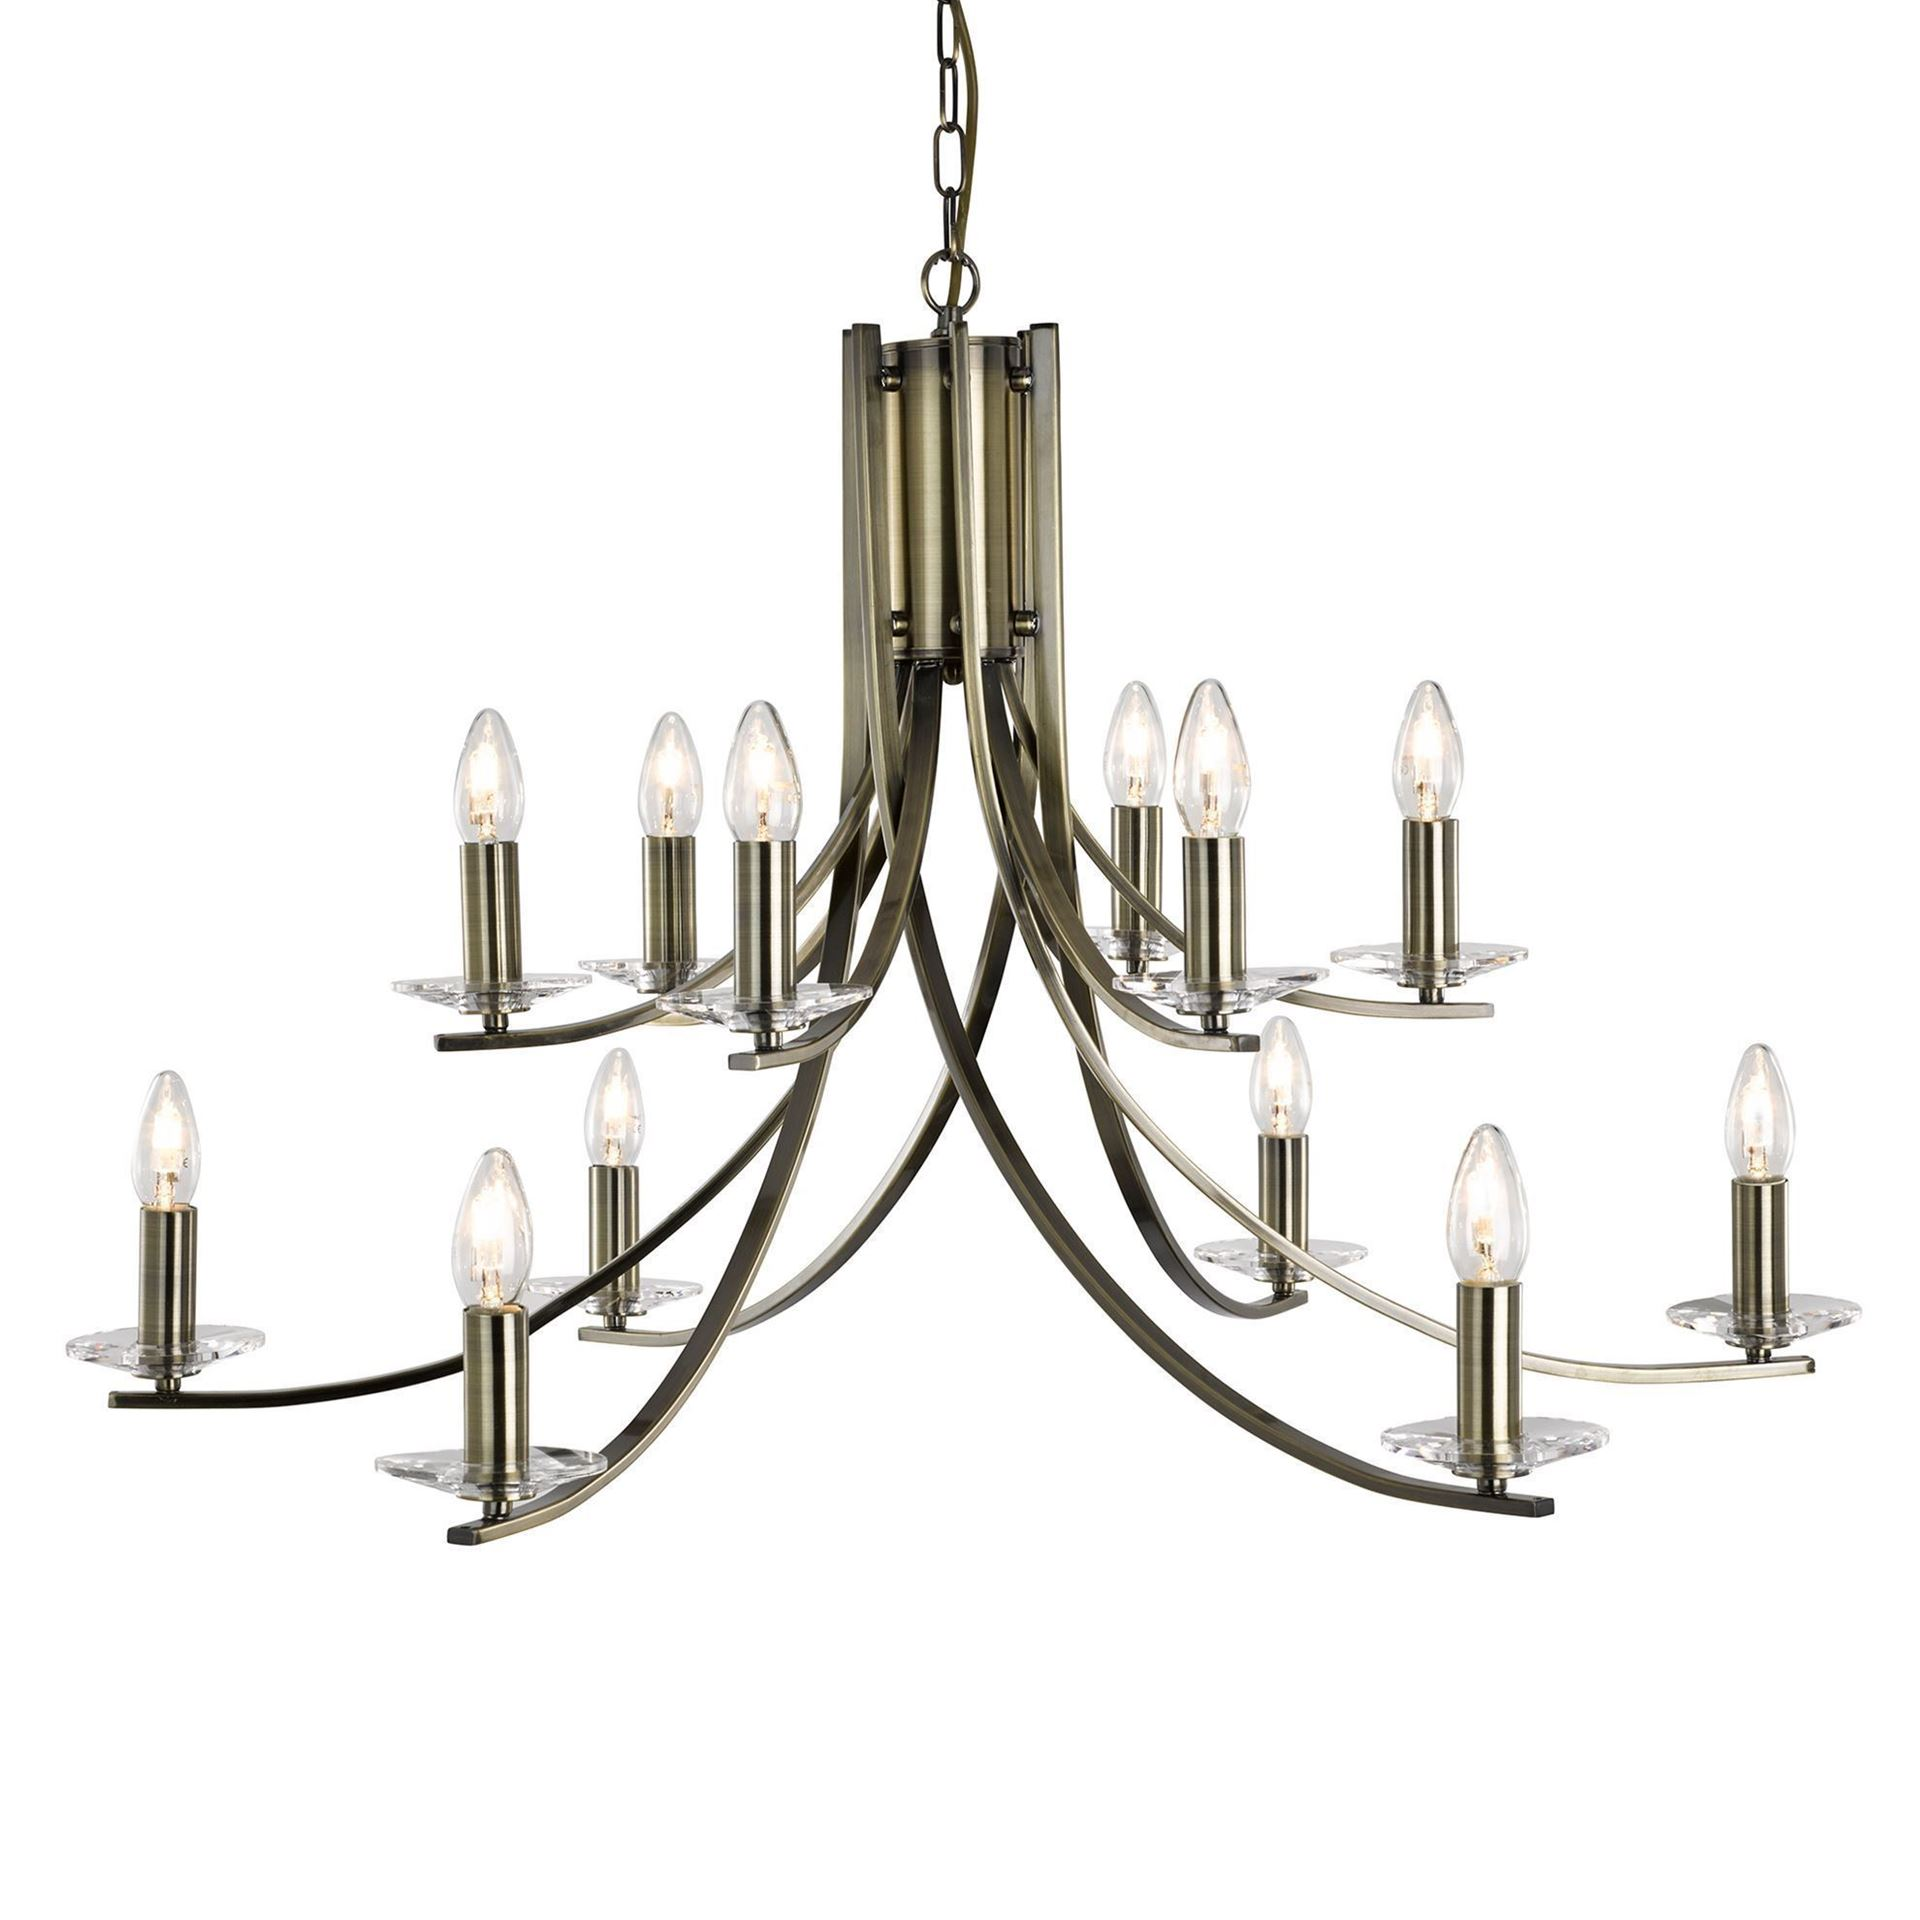 ASCONA ANTIQUE BRASS 12 LIGHT FITTING WITH CLEAR GLASS SCONCES 41612-12AB